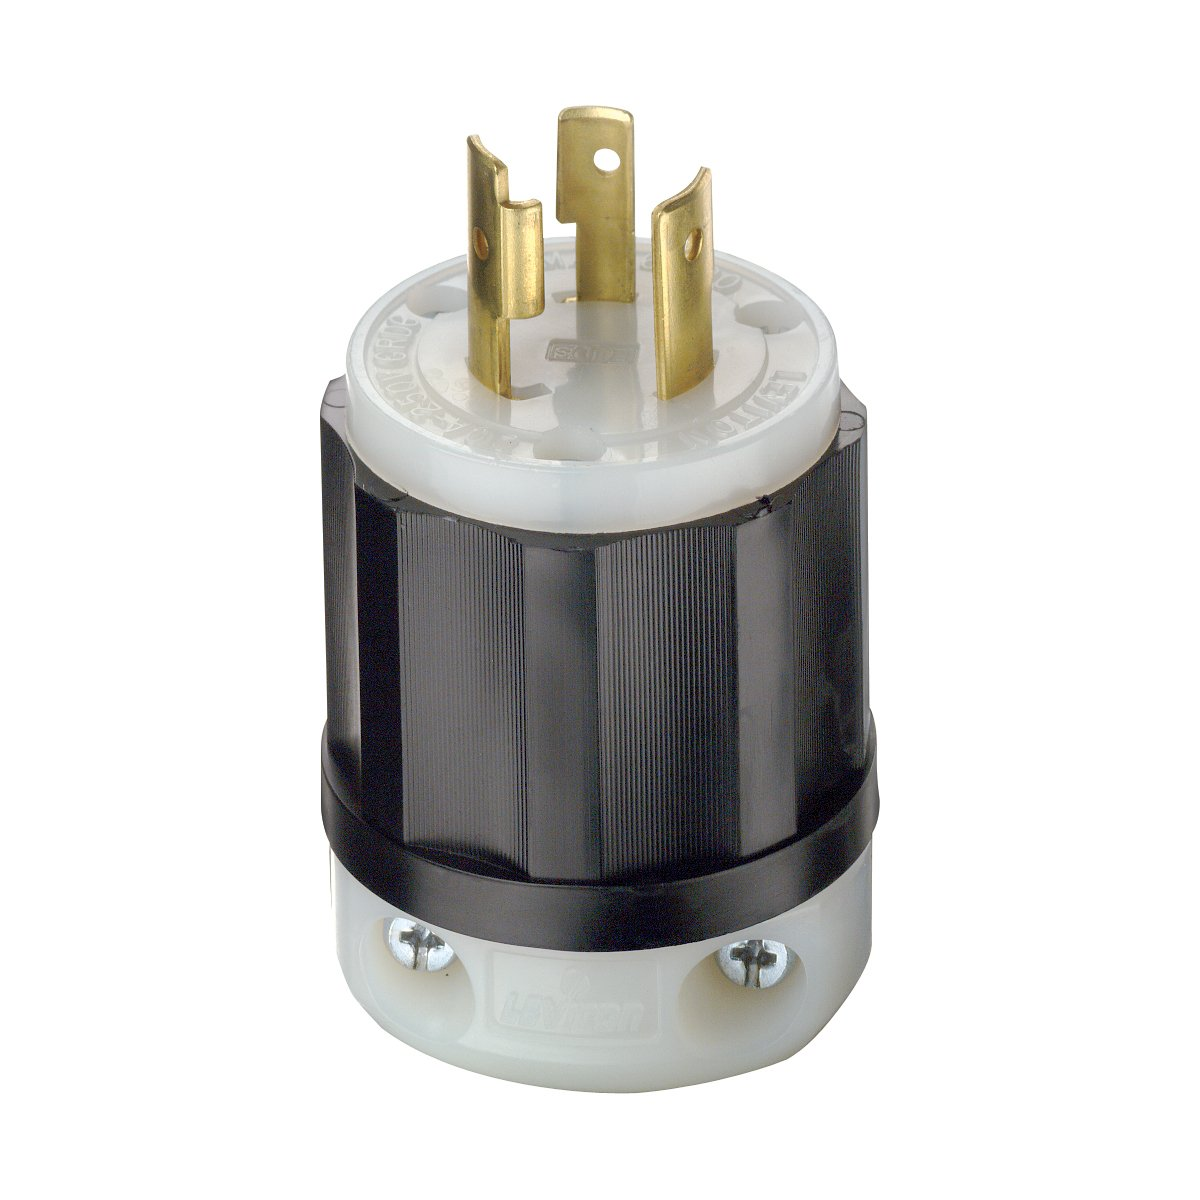 Safely Use Extension Cords When Charging An Electric Car Or Nema L5 15 Amp Plug Wiring Diagram Leviton 2321 20 250 Volt L6 20p 2p 3w Locking Industrial Grade Grounding Black White